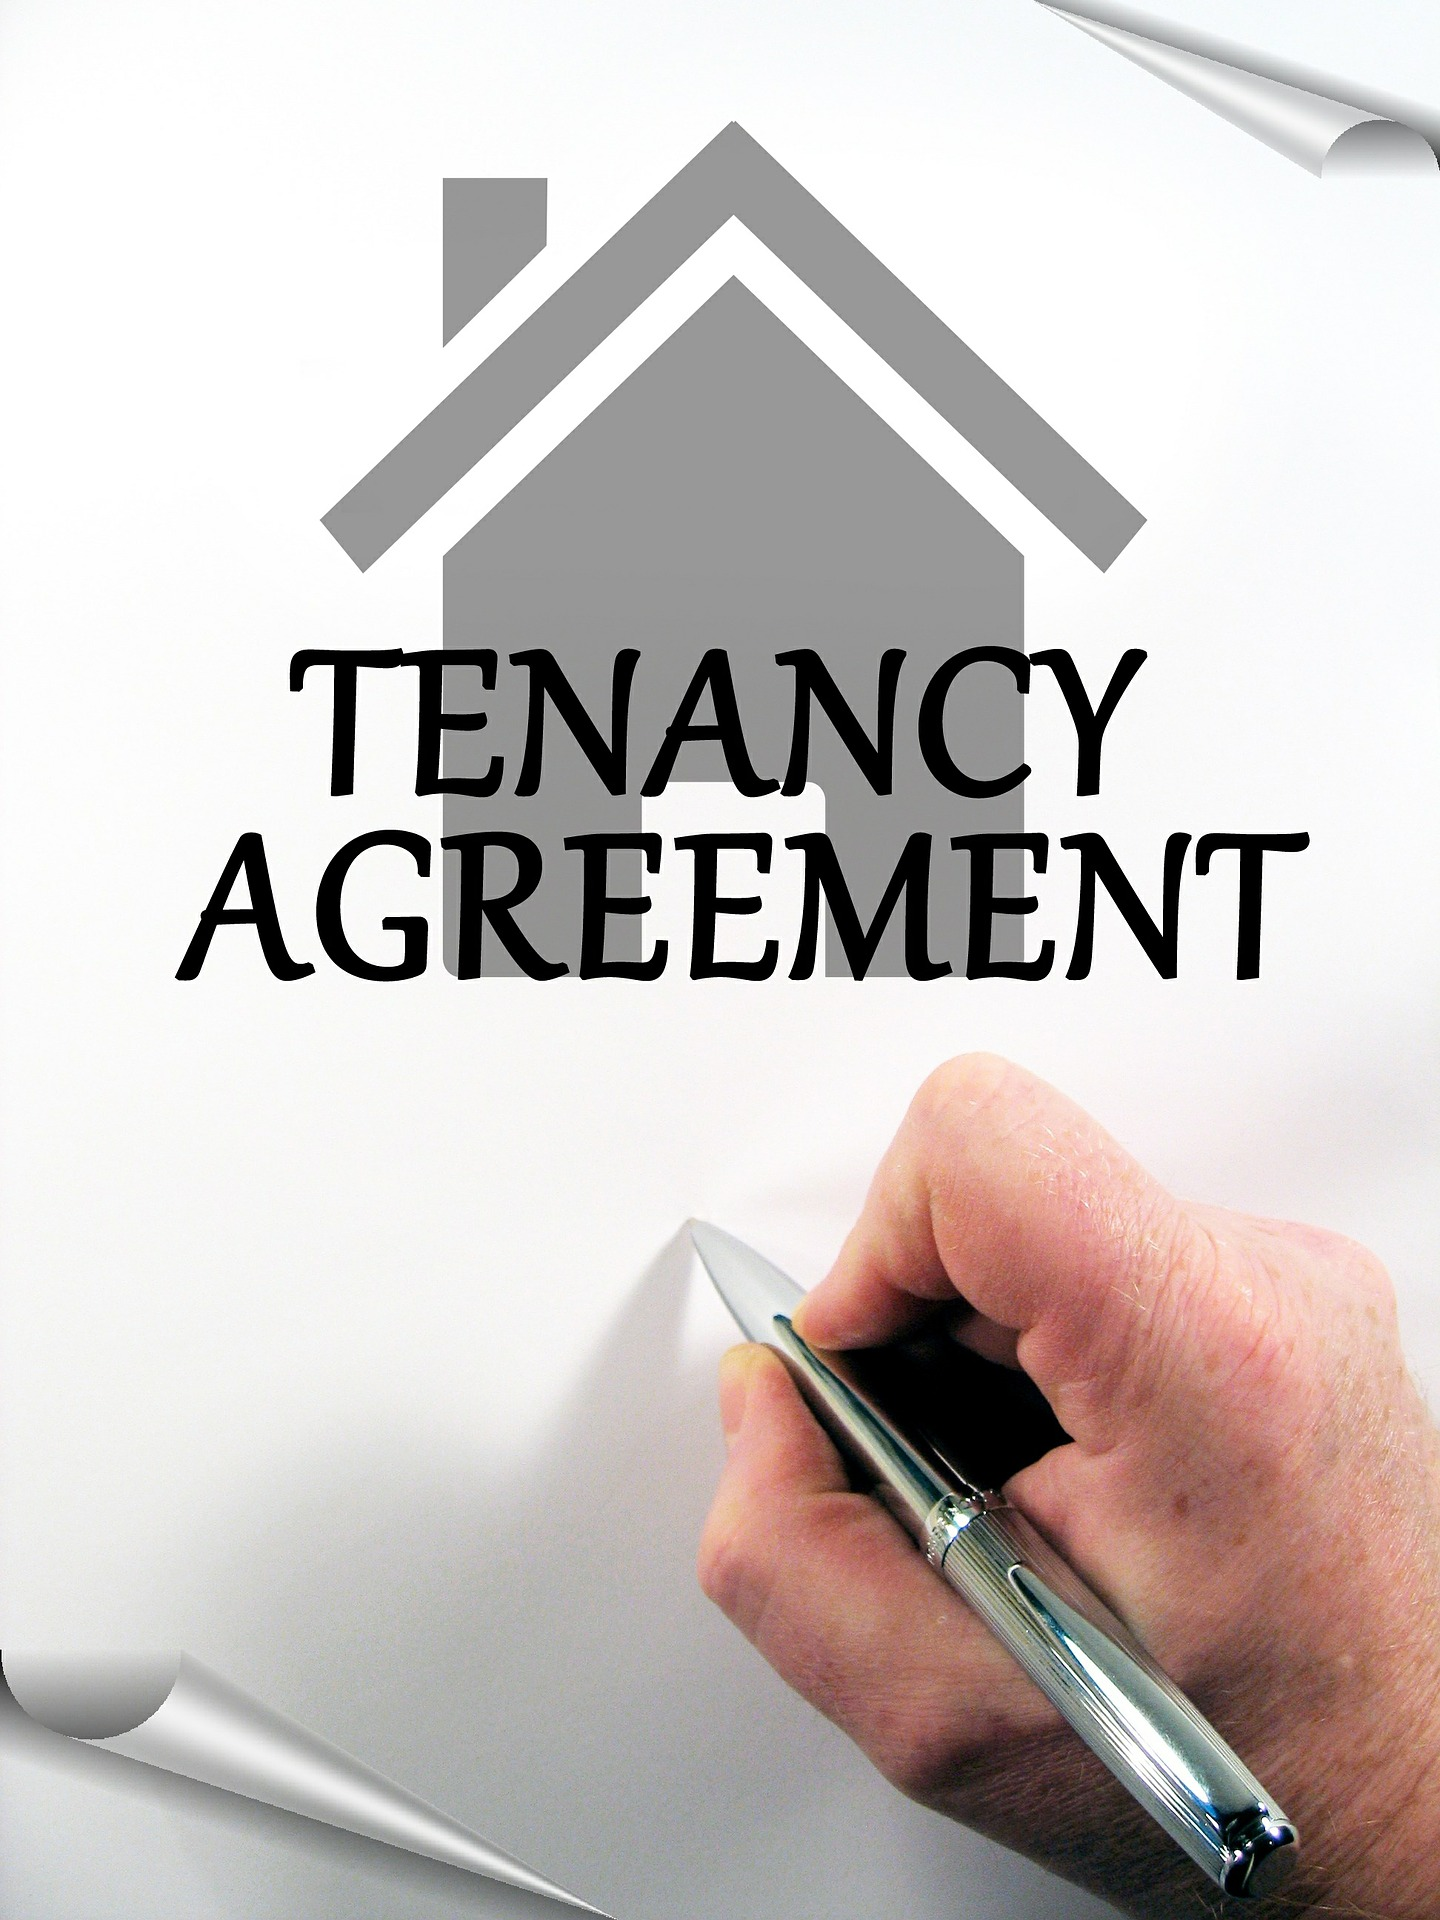 Student dorms tenancy agreement contractvs flat / condo rentals